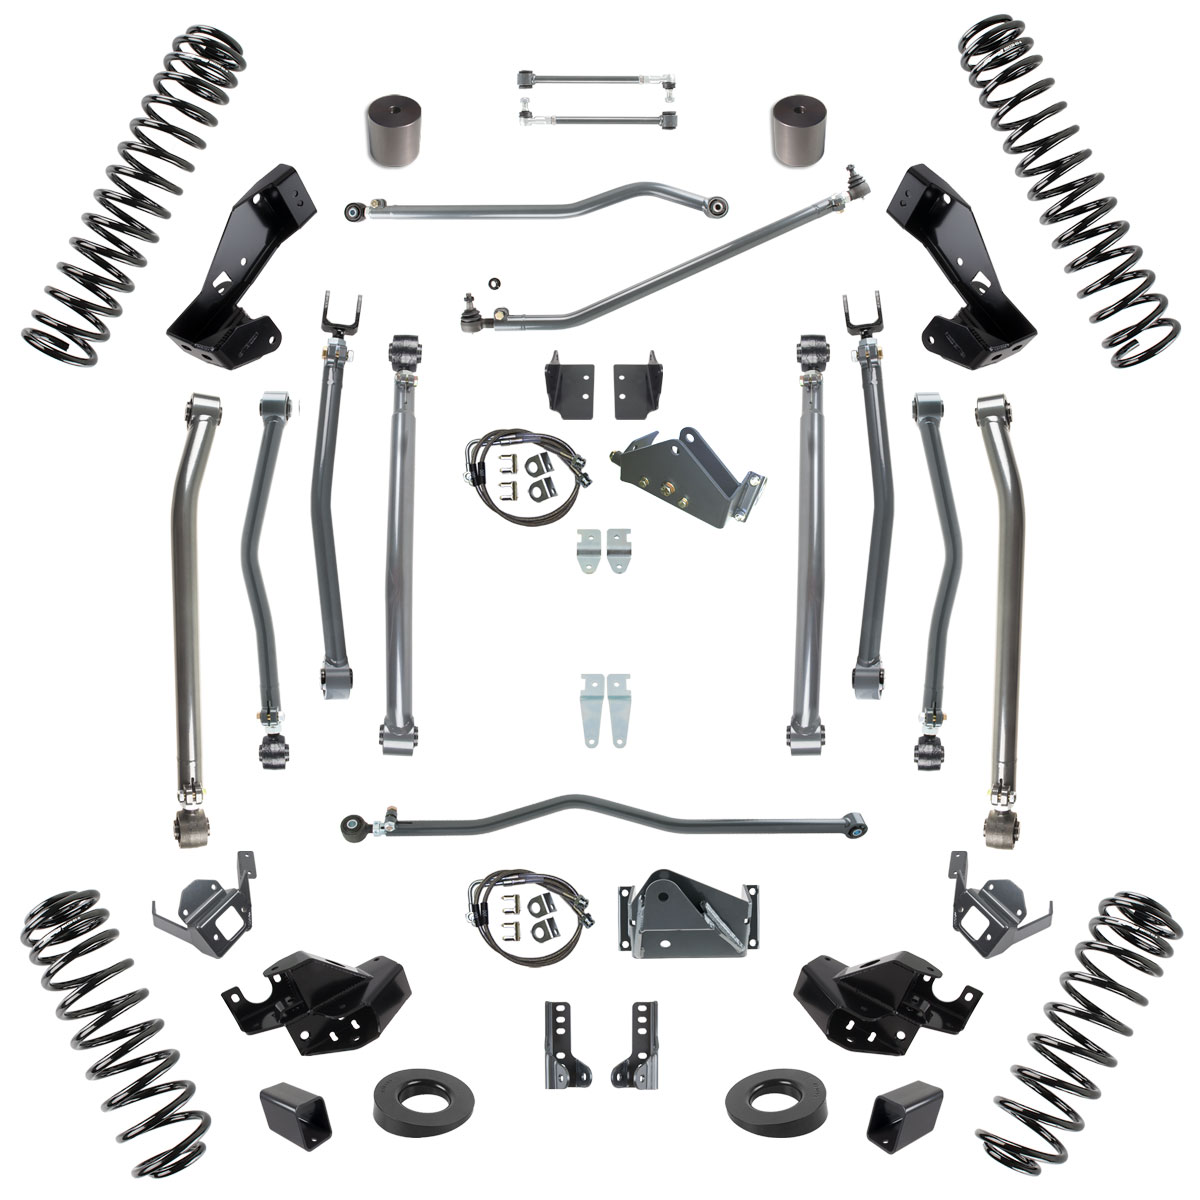 "Jeep JK Stage 4 Long Arm Suspension System, 6.0"" Lift"